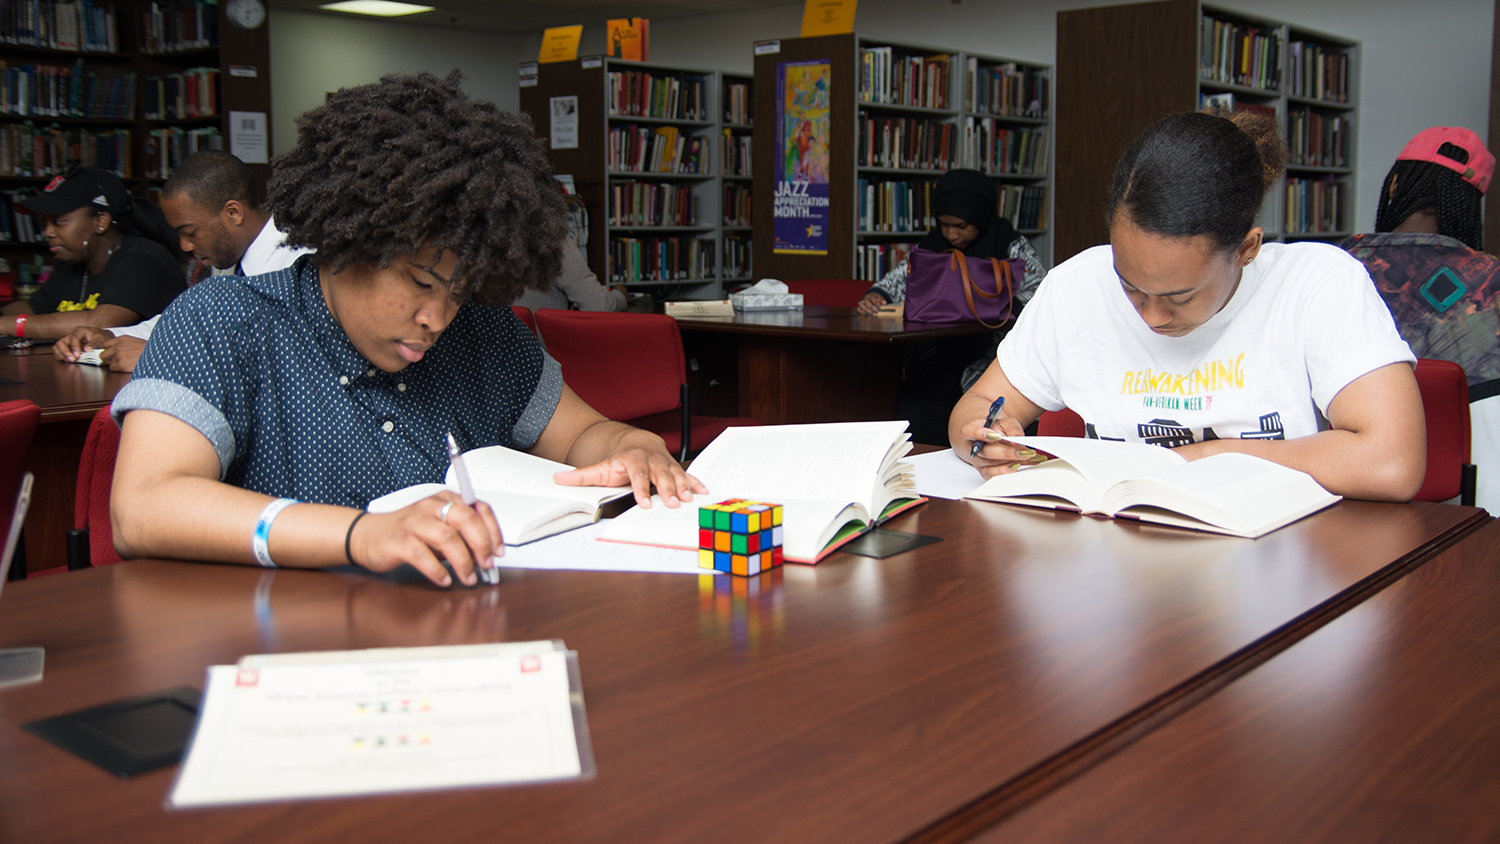 Students studying in African American Cultural Center library